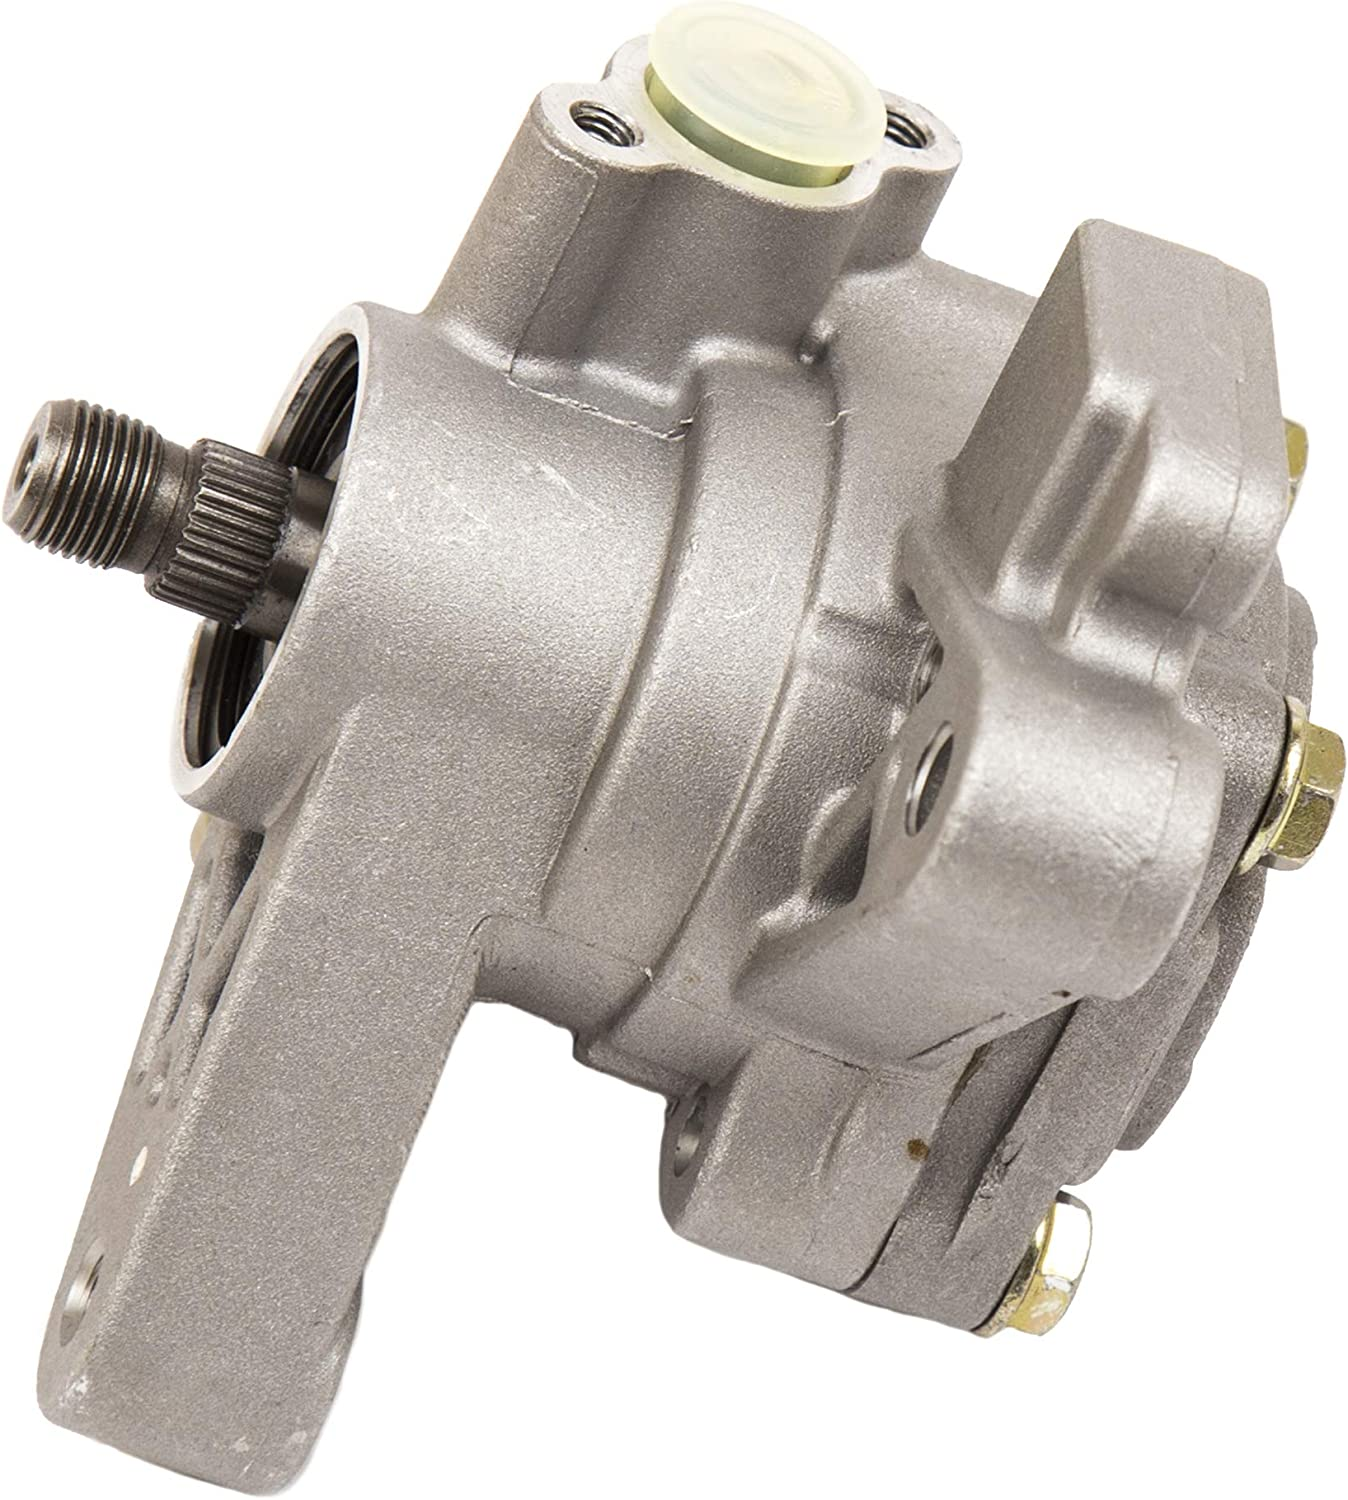 Evergreen SP-1919 Power Steering Pump fit 98-02 Honda Accord 2.3L SOHC 21-5919 56110-PAA-A01